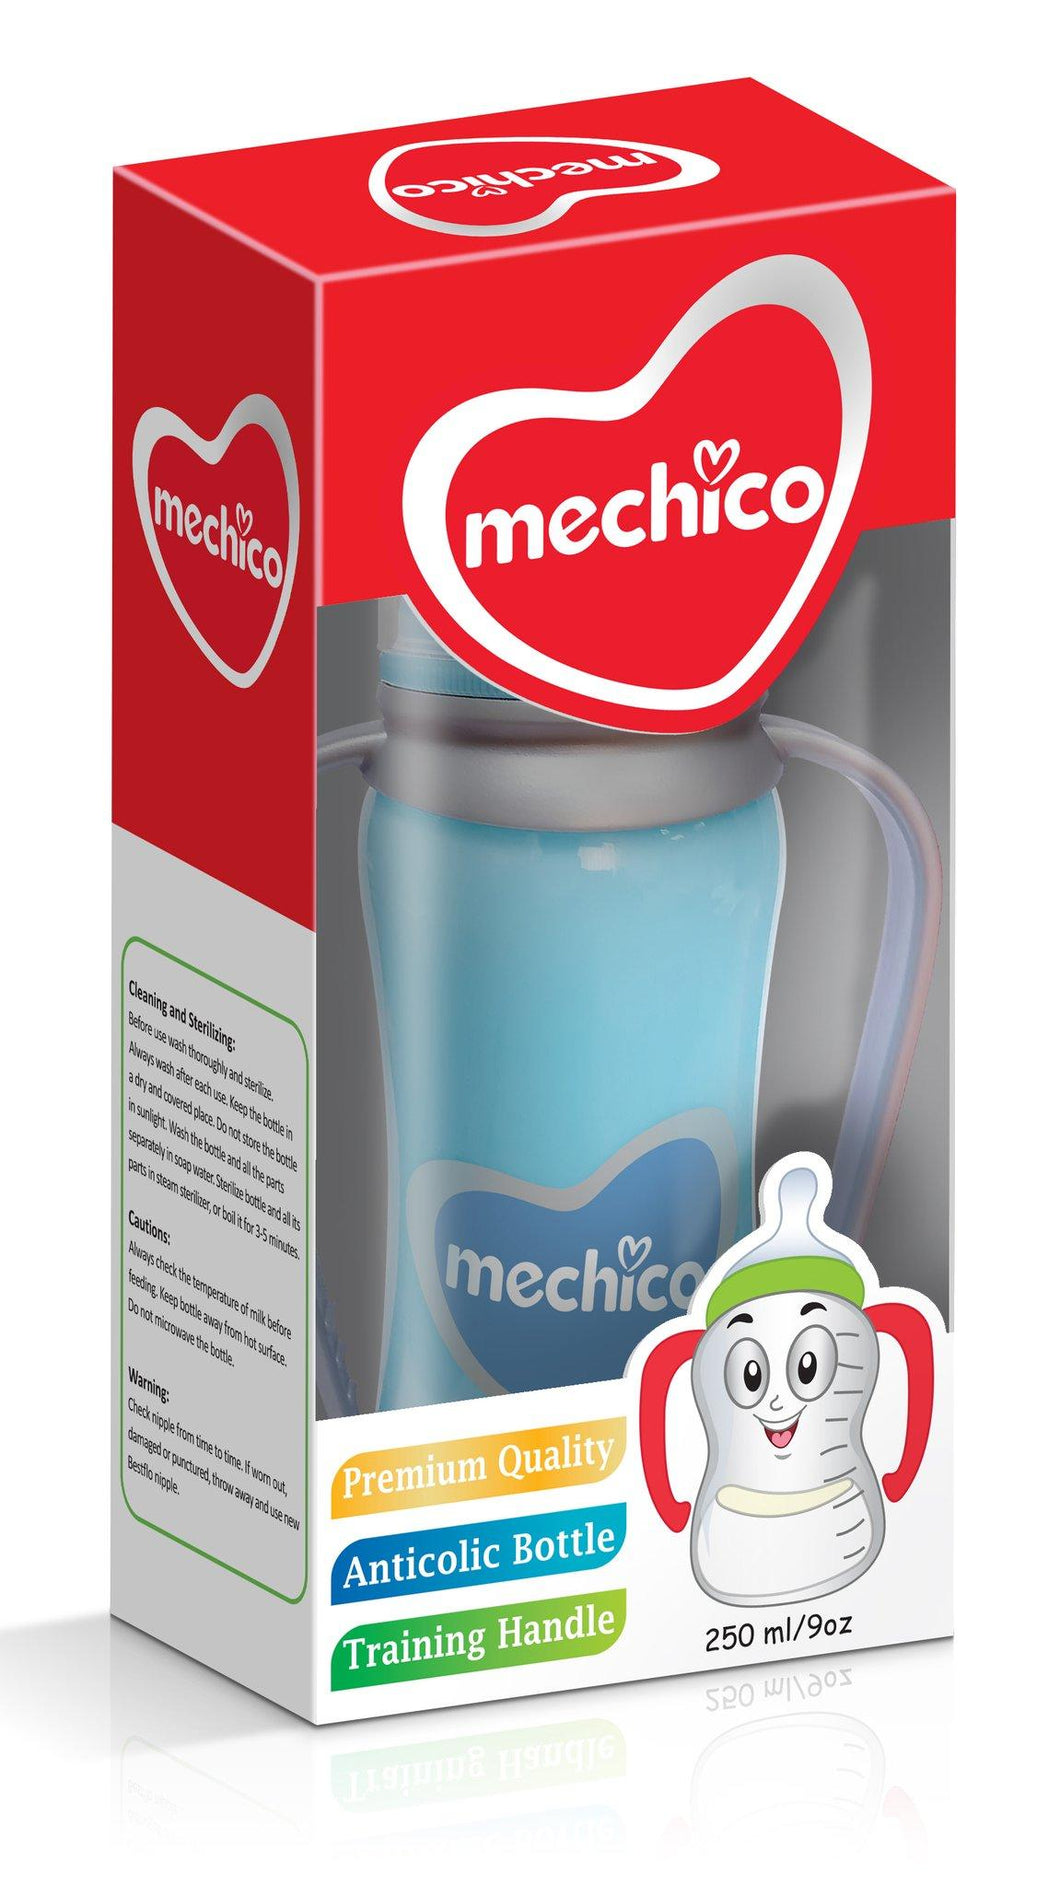 Mechico 250ml 9oz